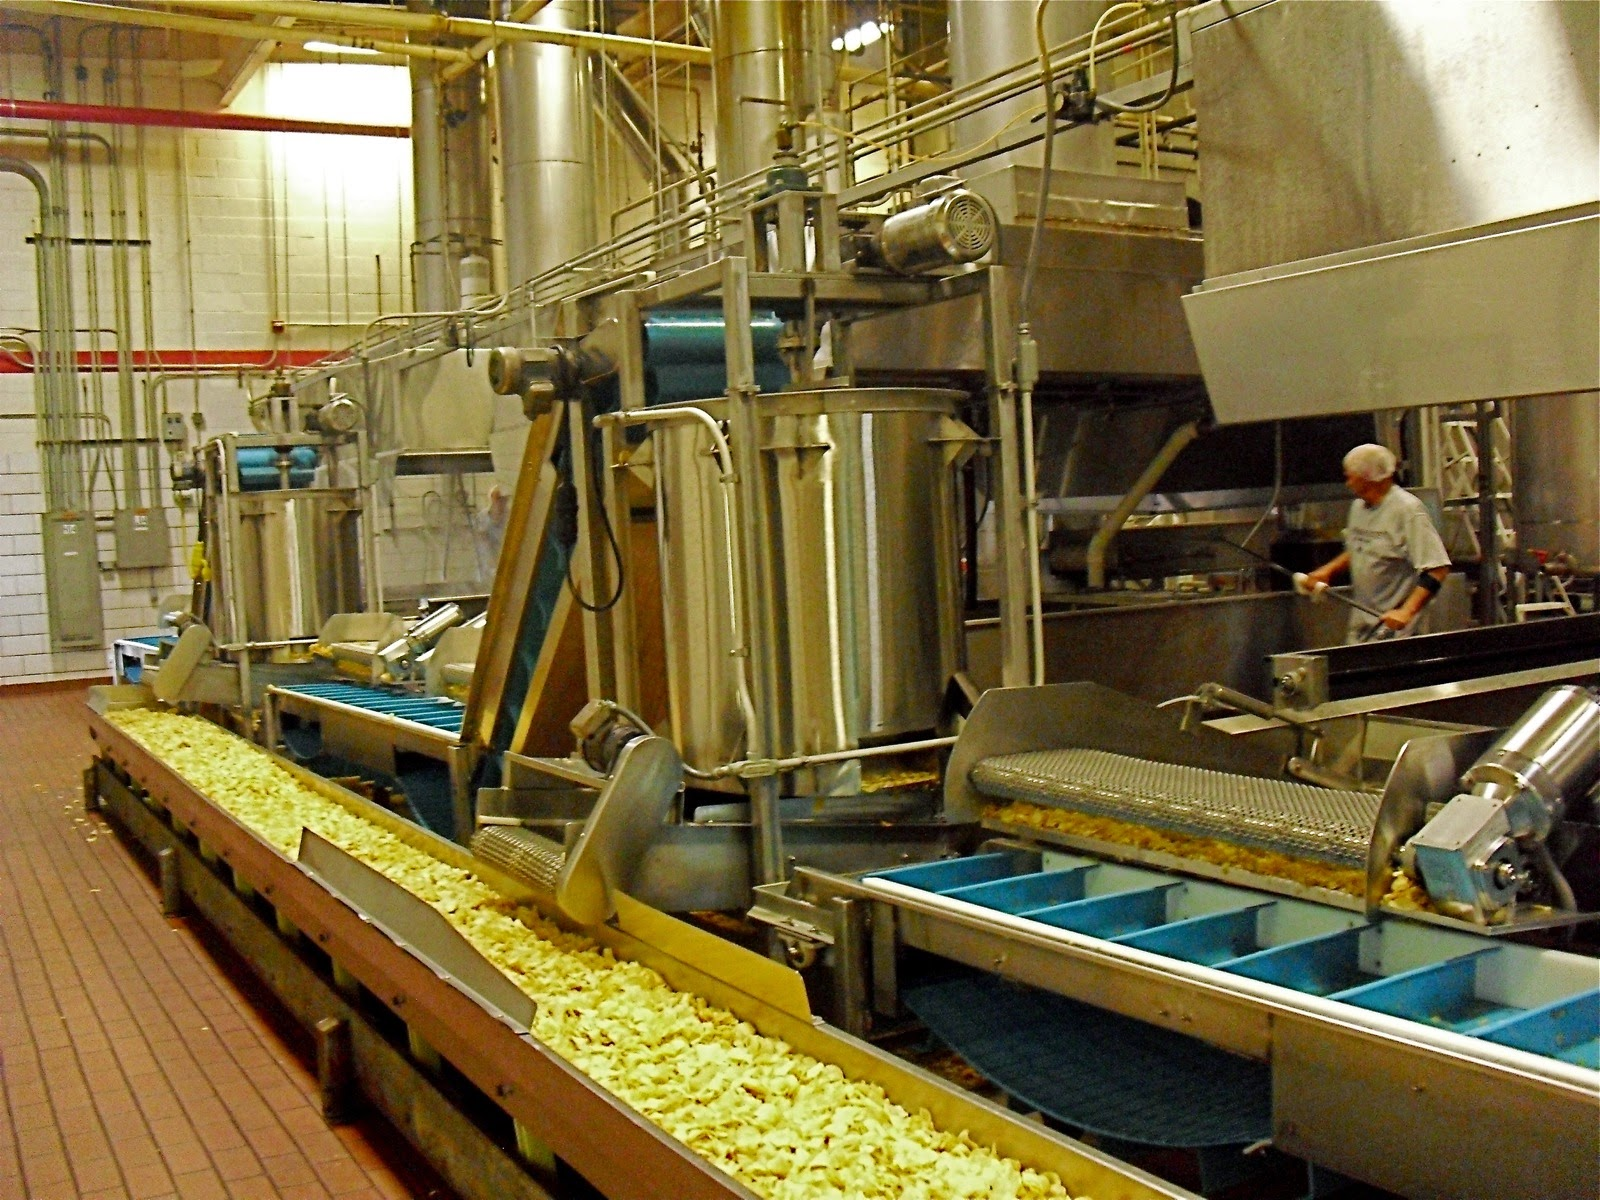 Processing the potatoes in a factory